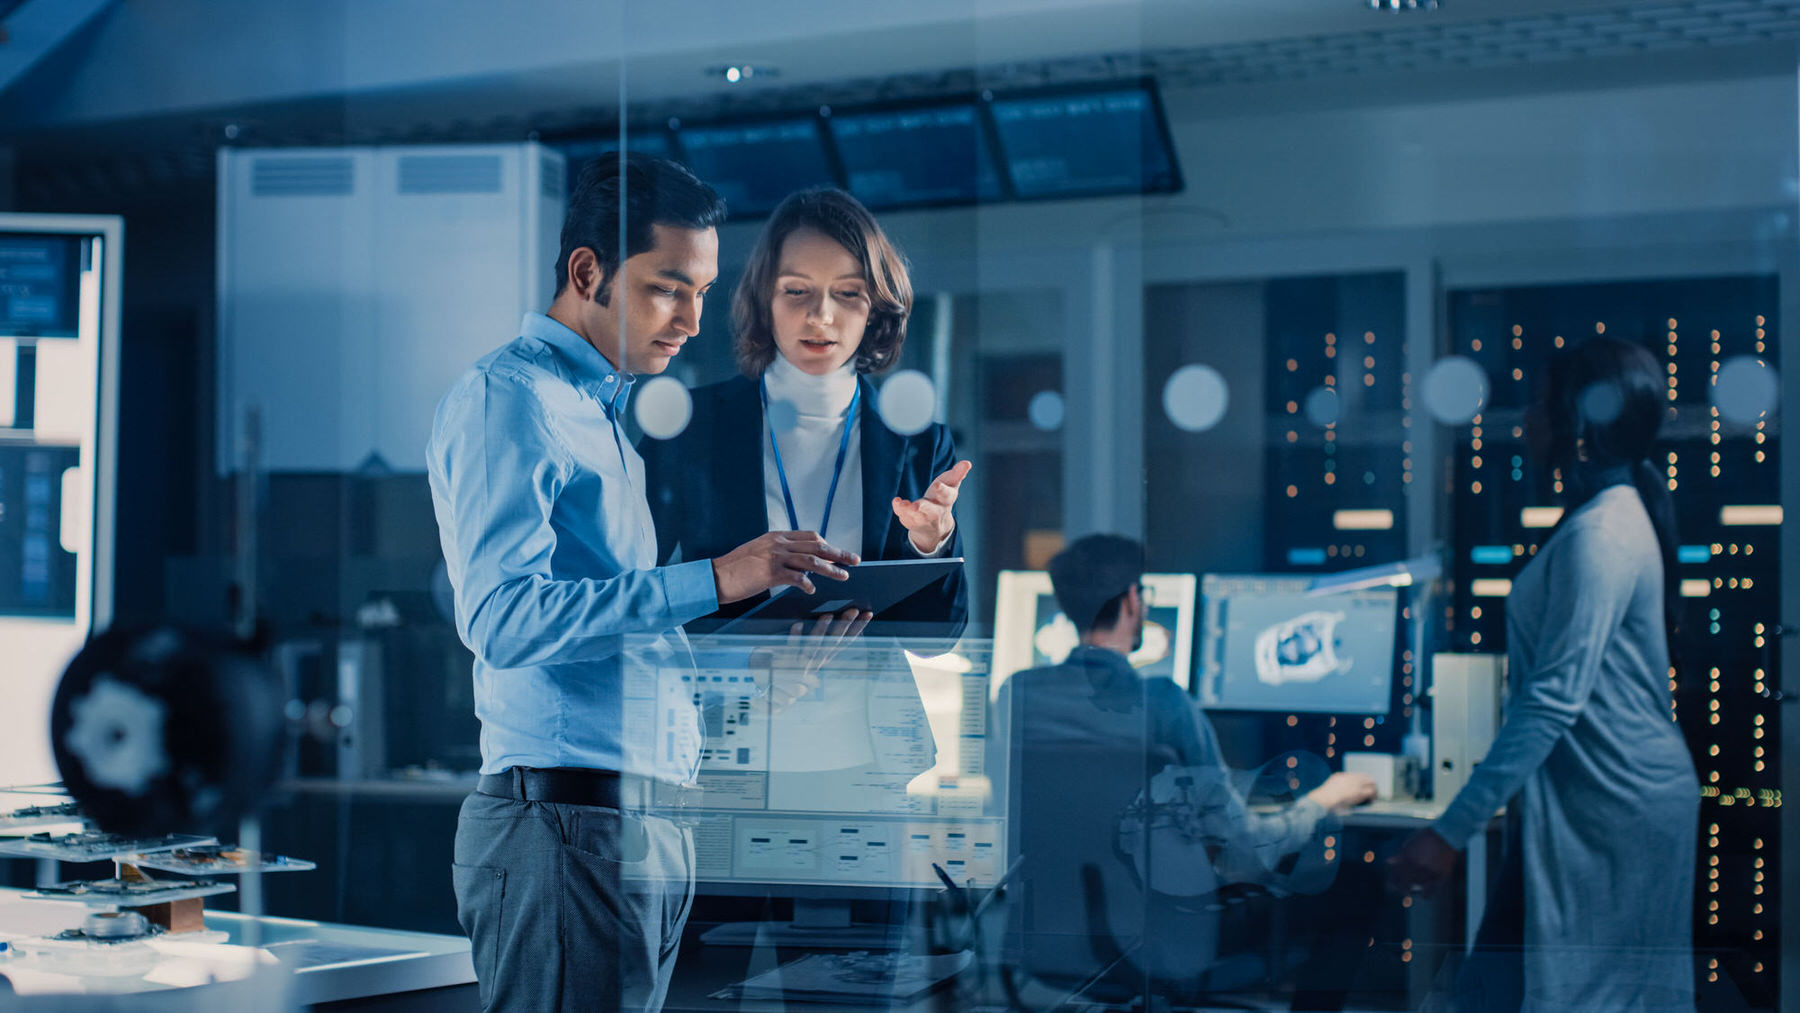 Reasons to Use Managed IT Services